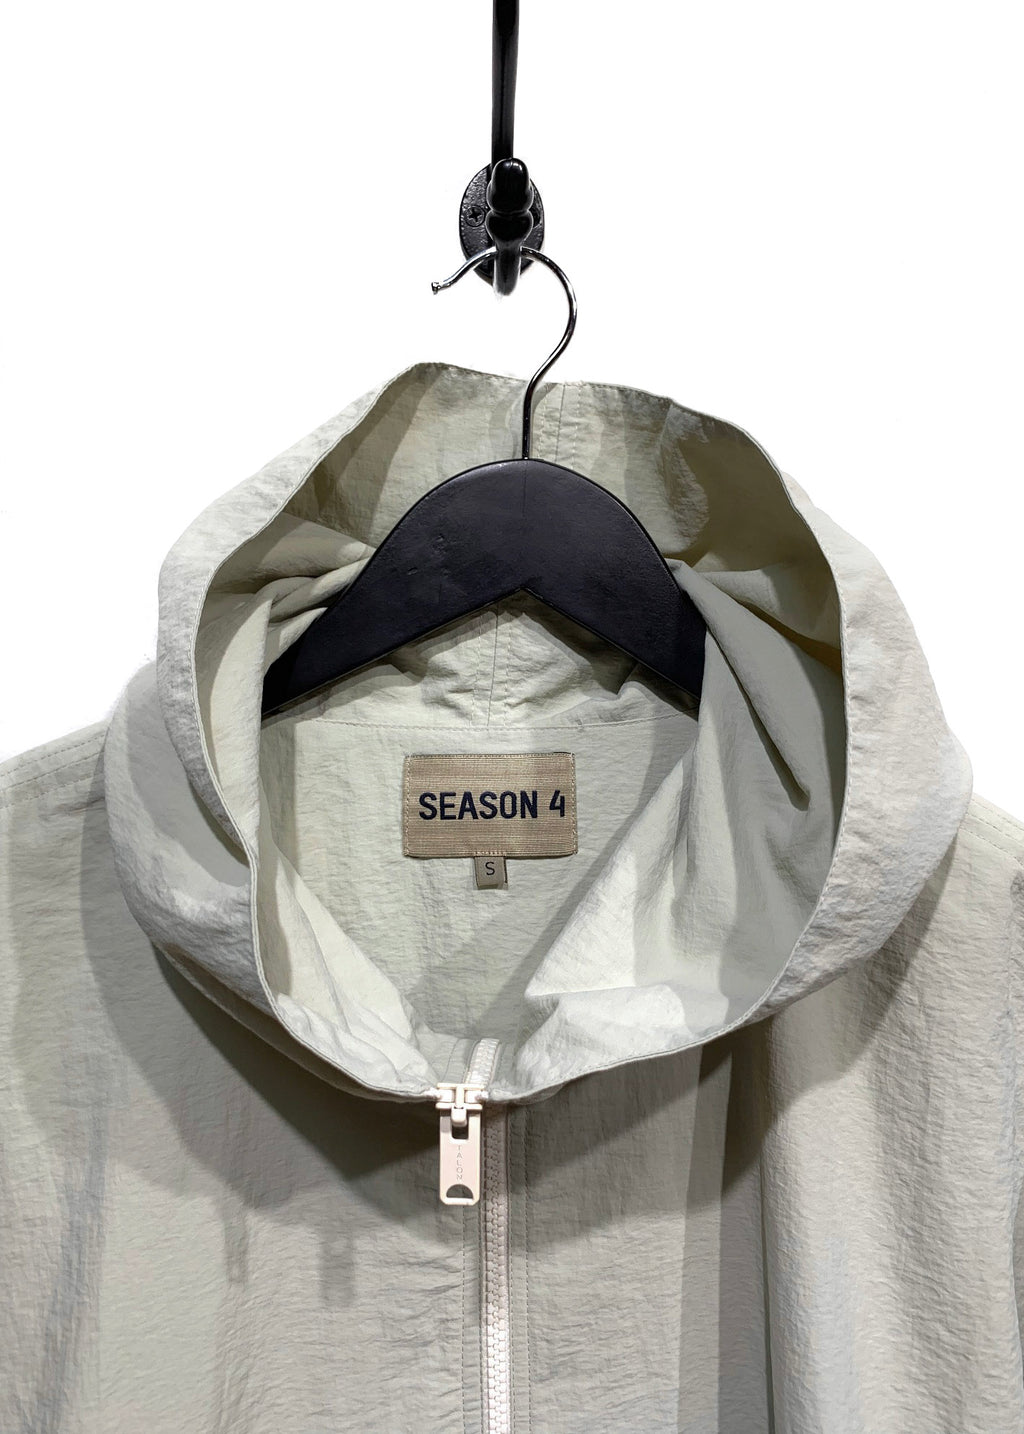 Yeezy Season 4 Beige Hooded Windbreaker Jacket